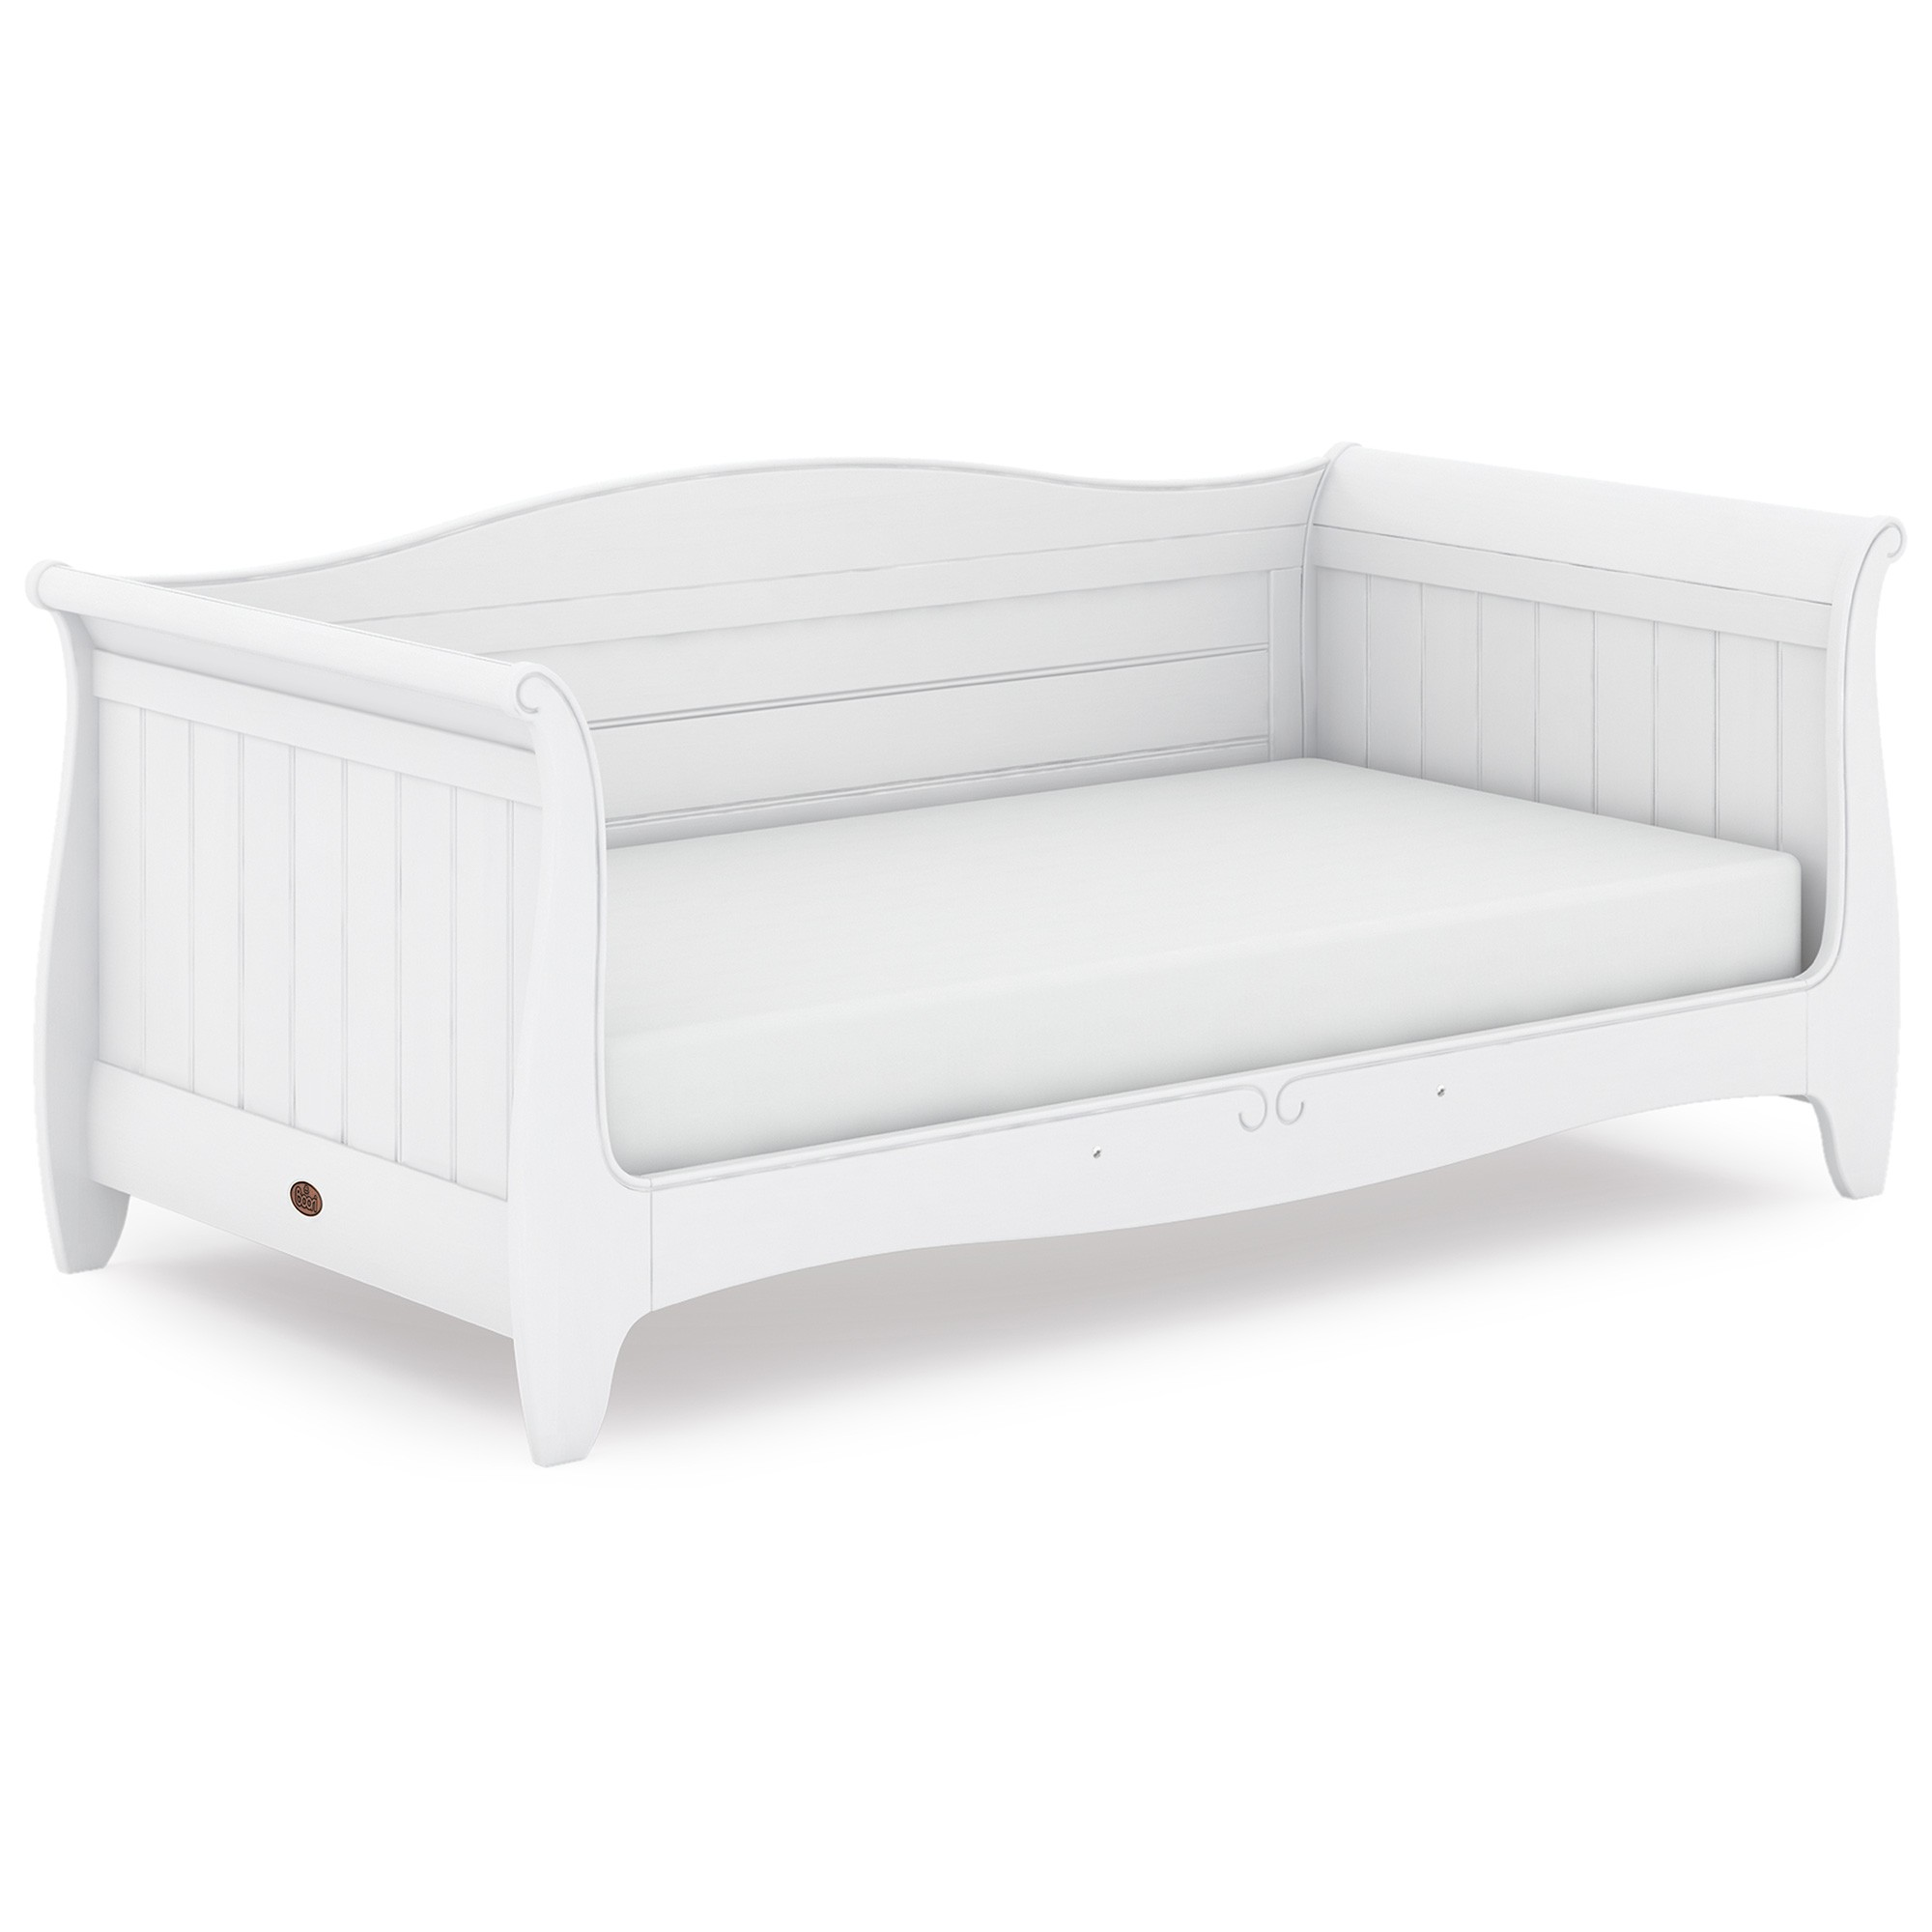 Boori Trinity Wooden Day Bed, King Single, Barley White